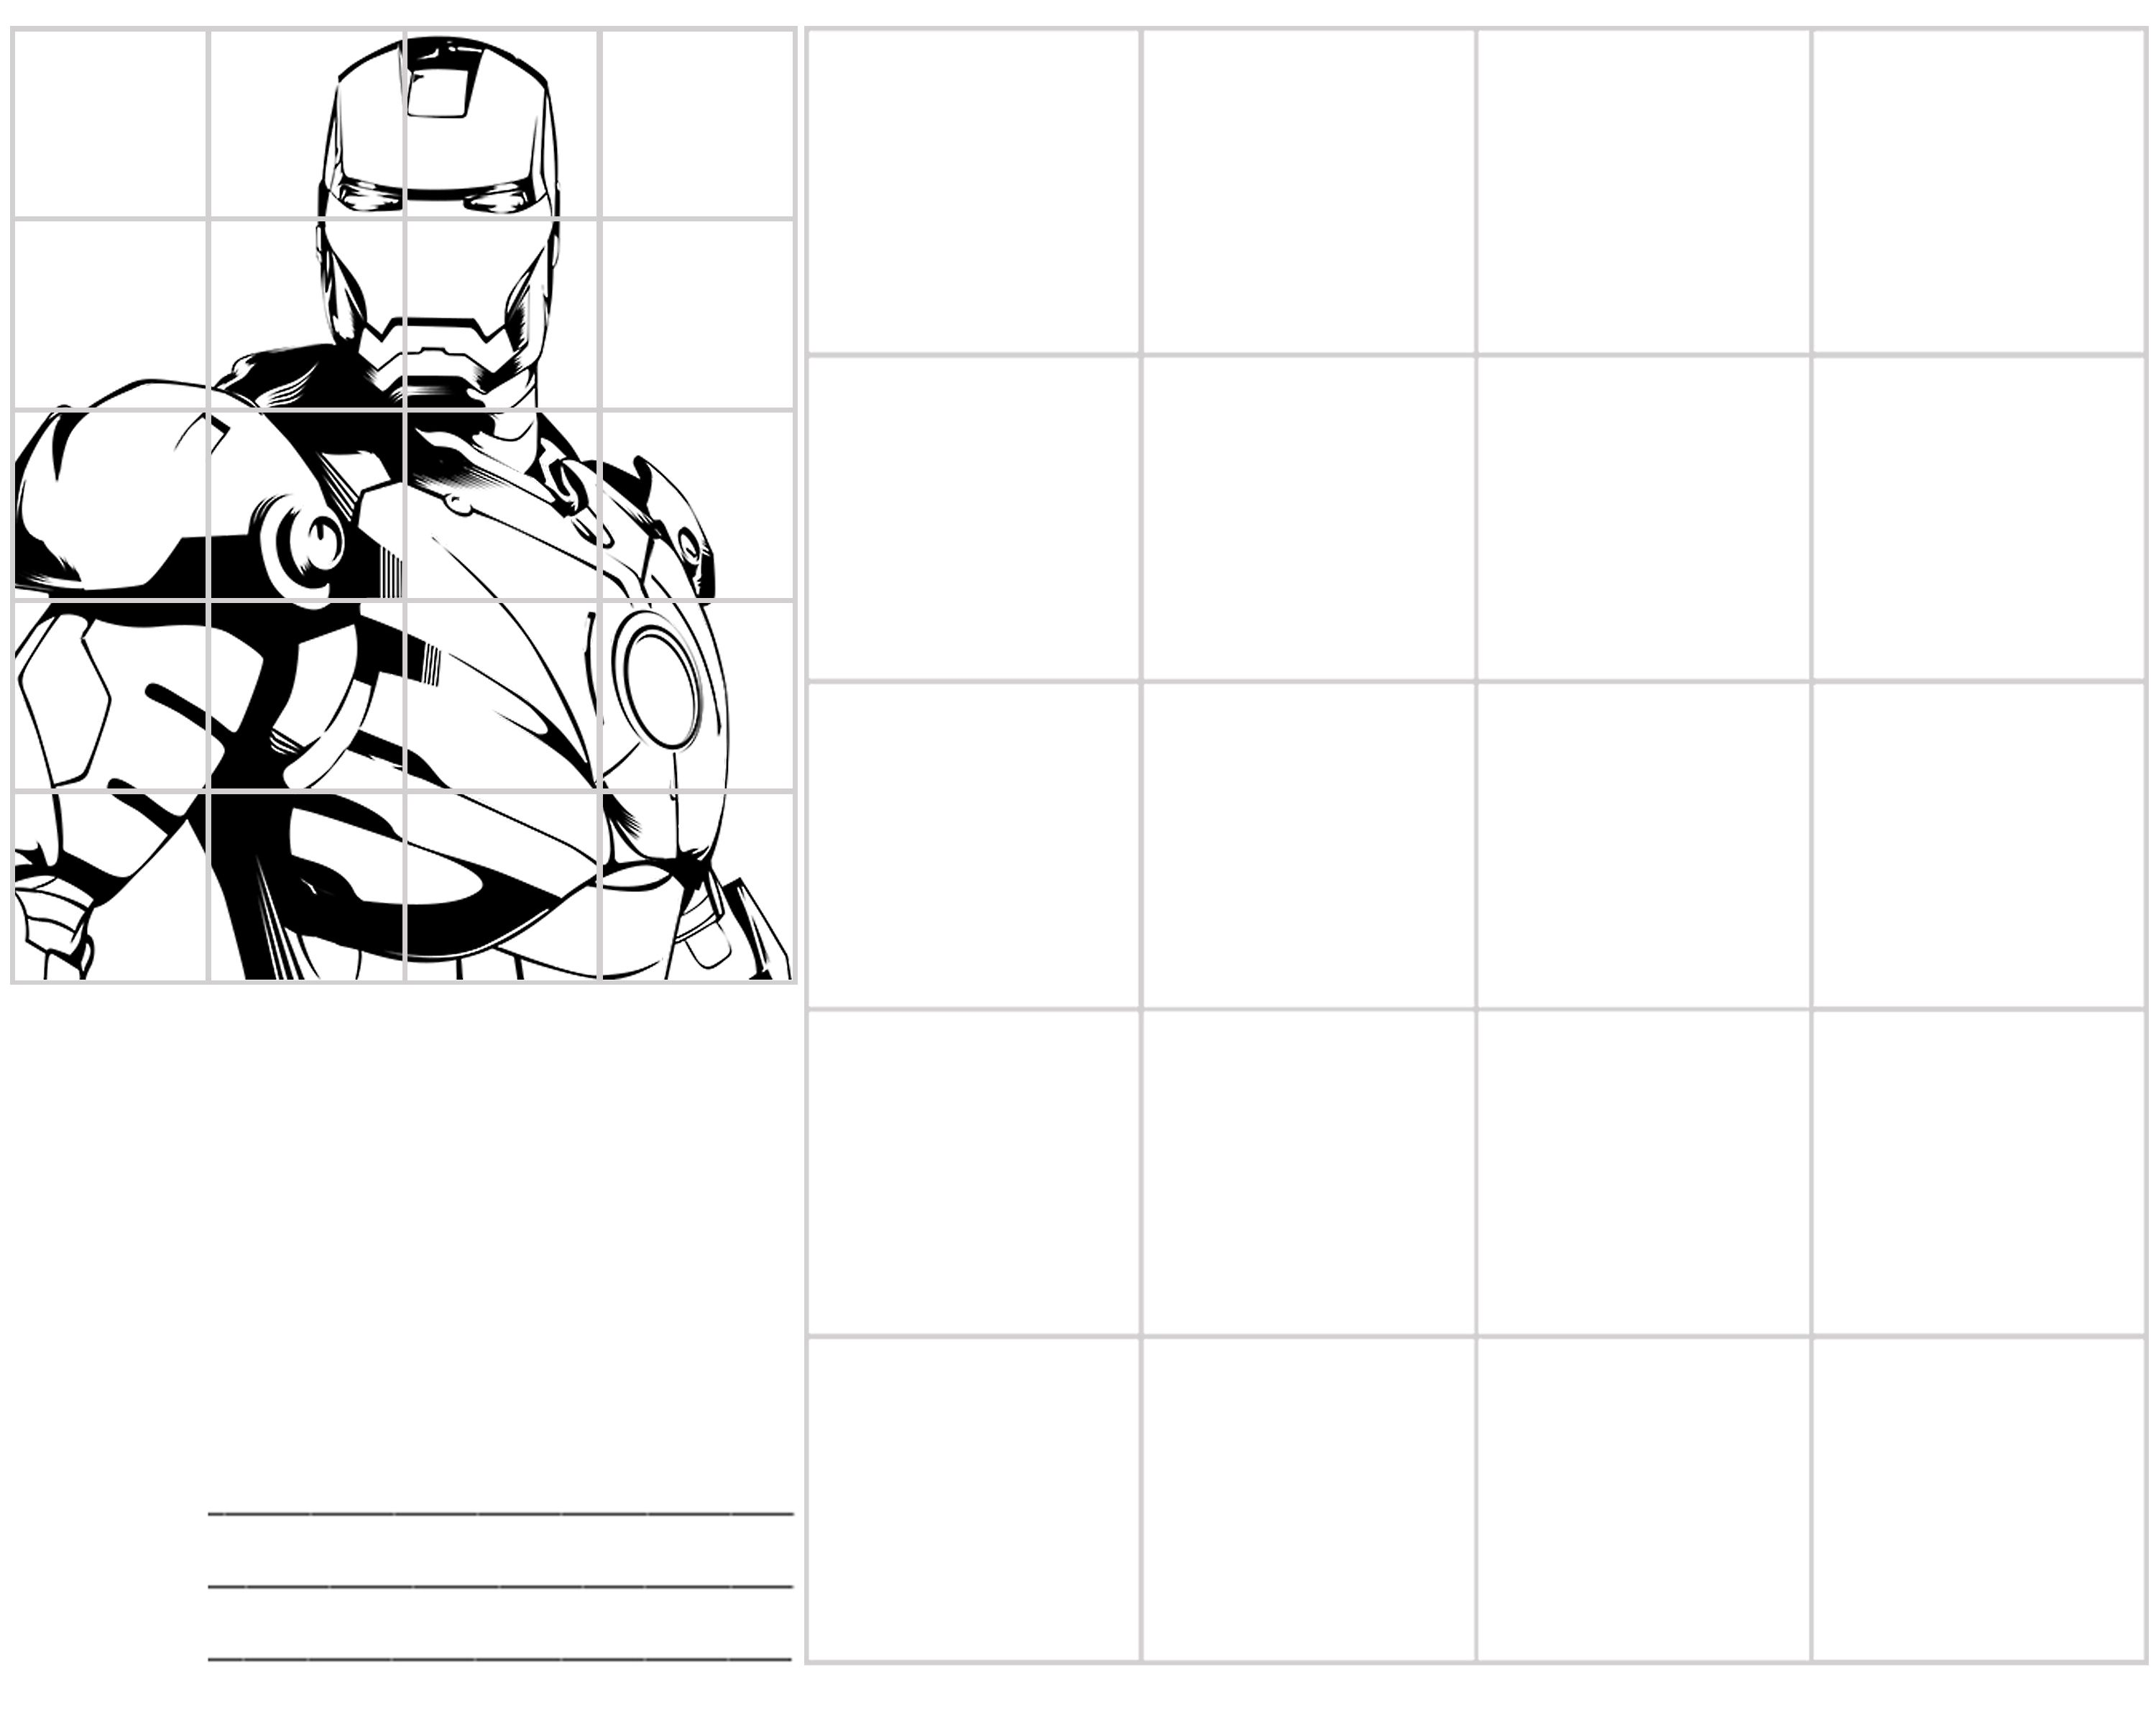 Art Grid Worksheet Kid Ironman Suit 3 000 2 400 Pixels